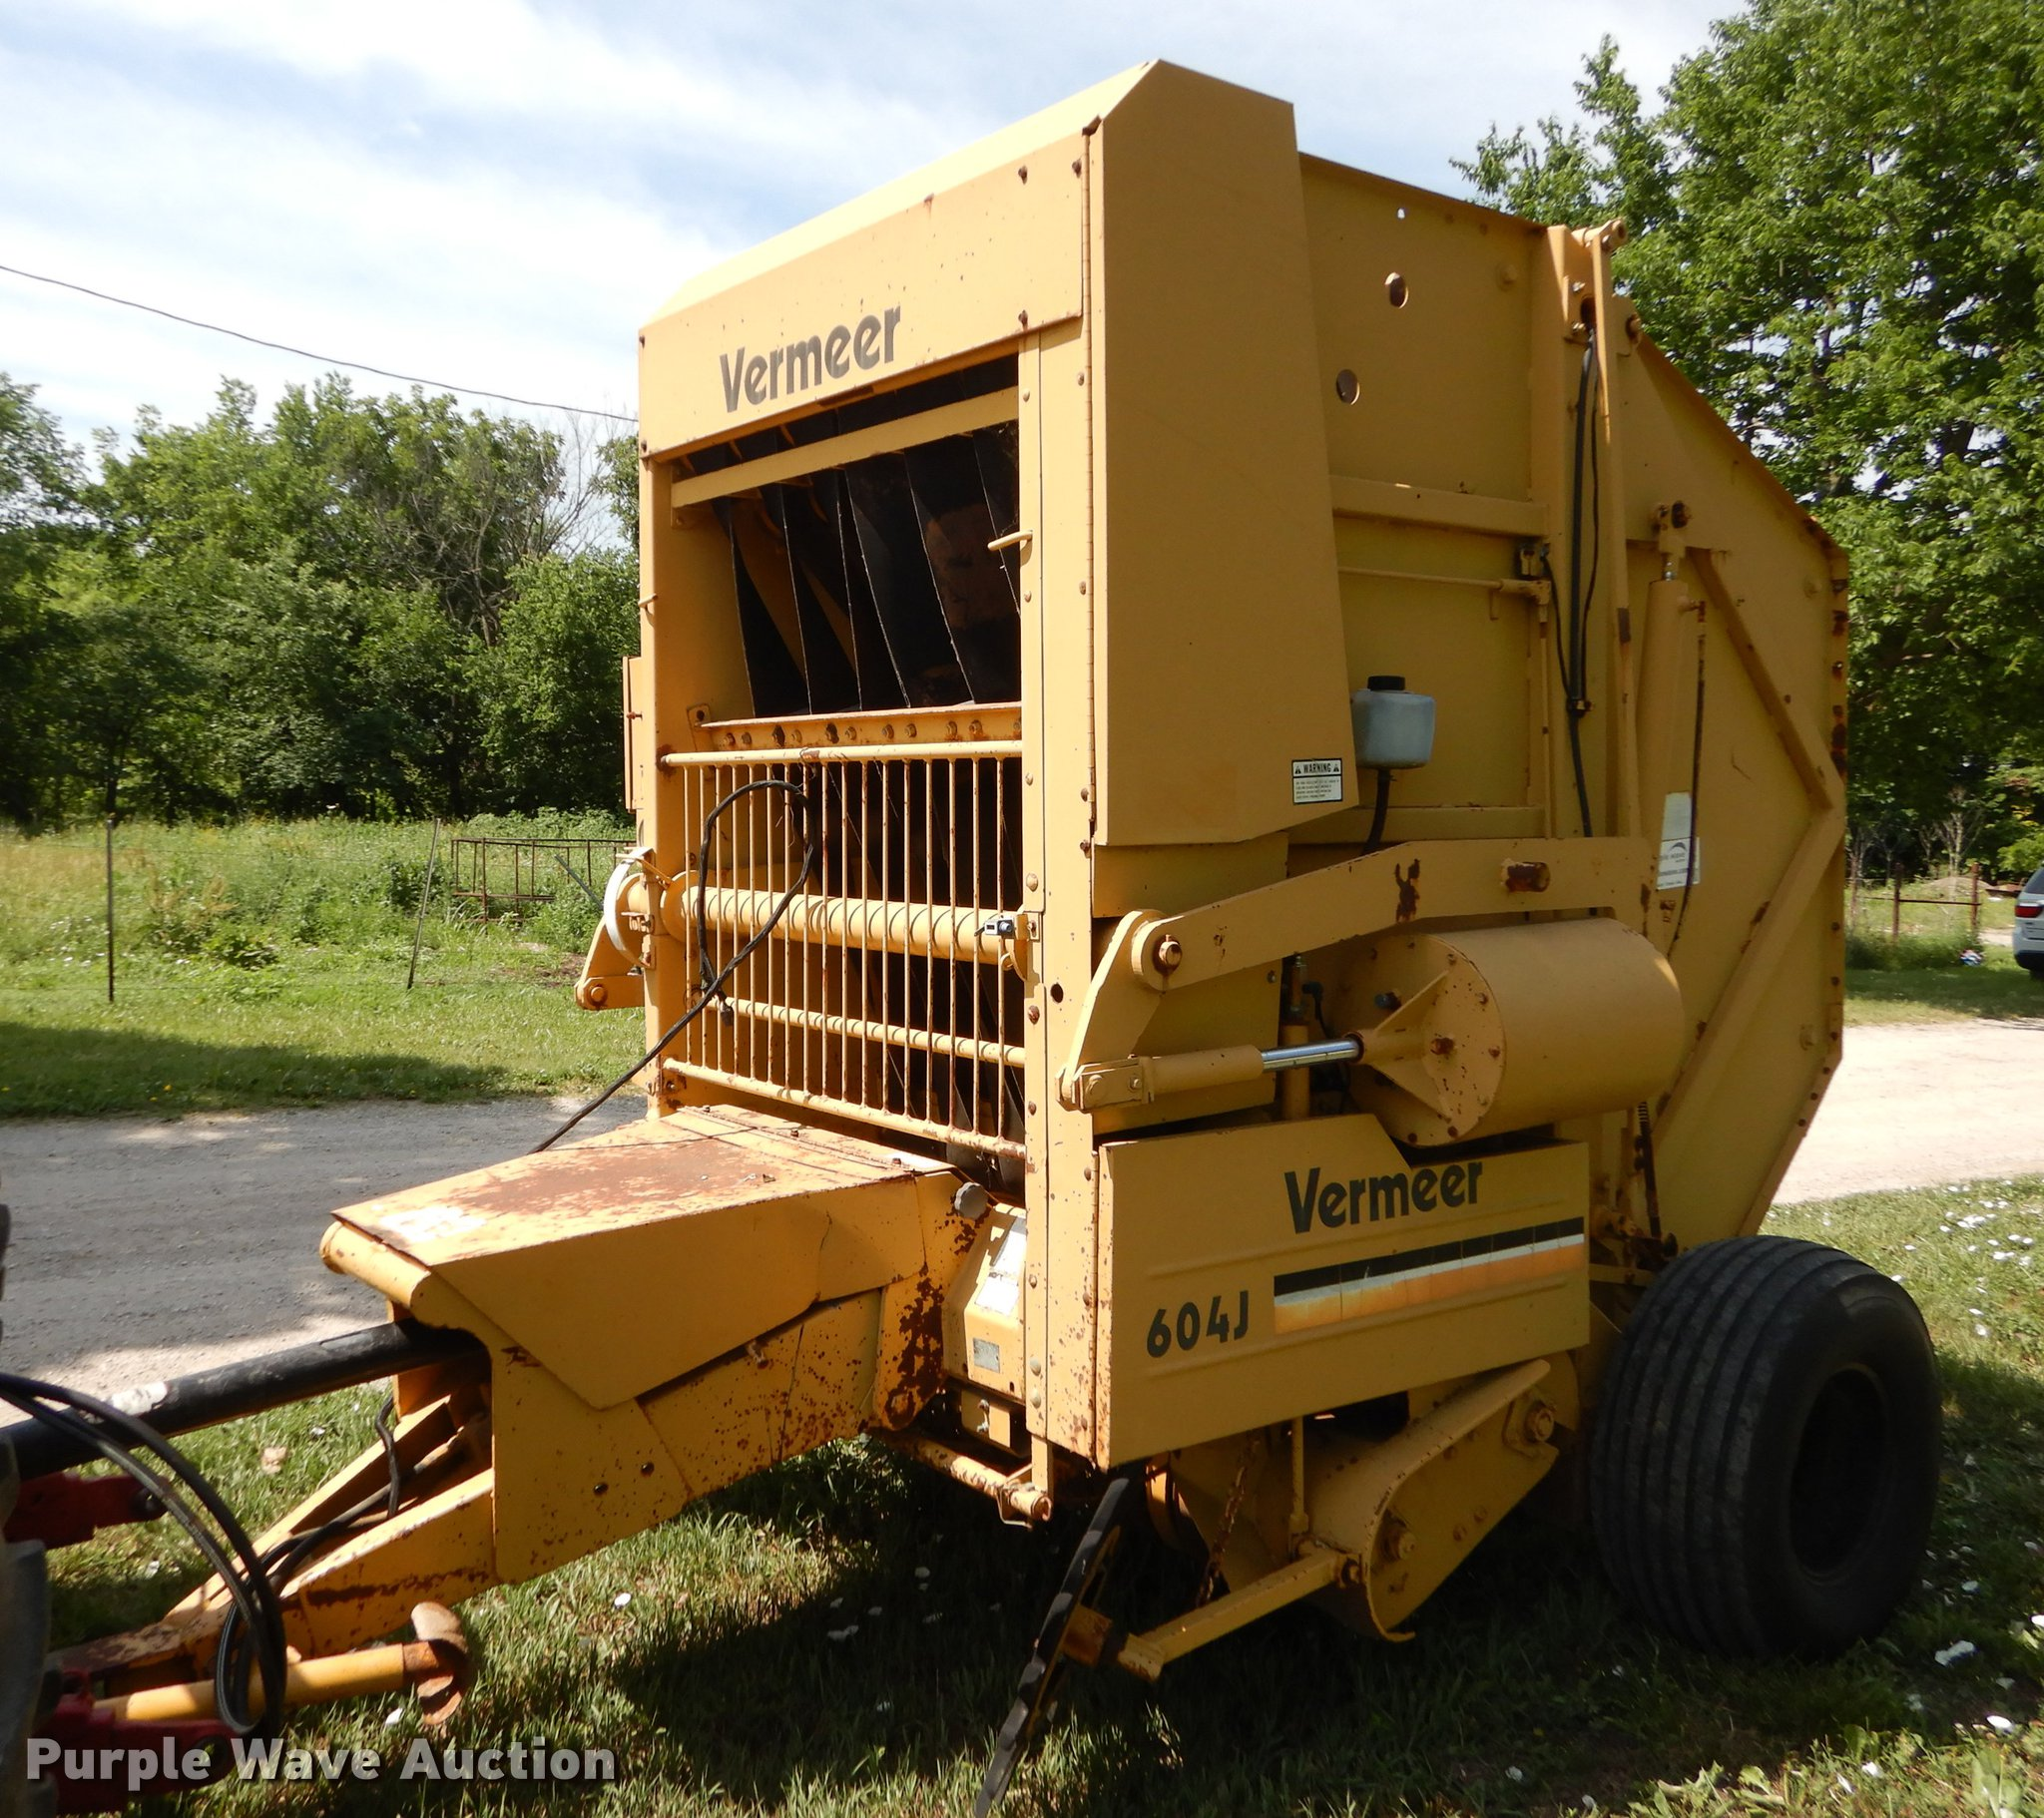 1988 Vermeer 604J round baler | Item DE1805 | SOLD! July 11